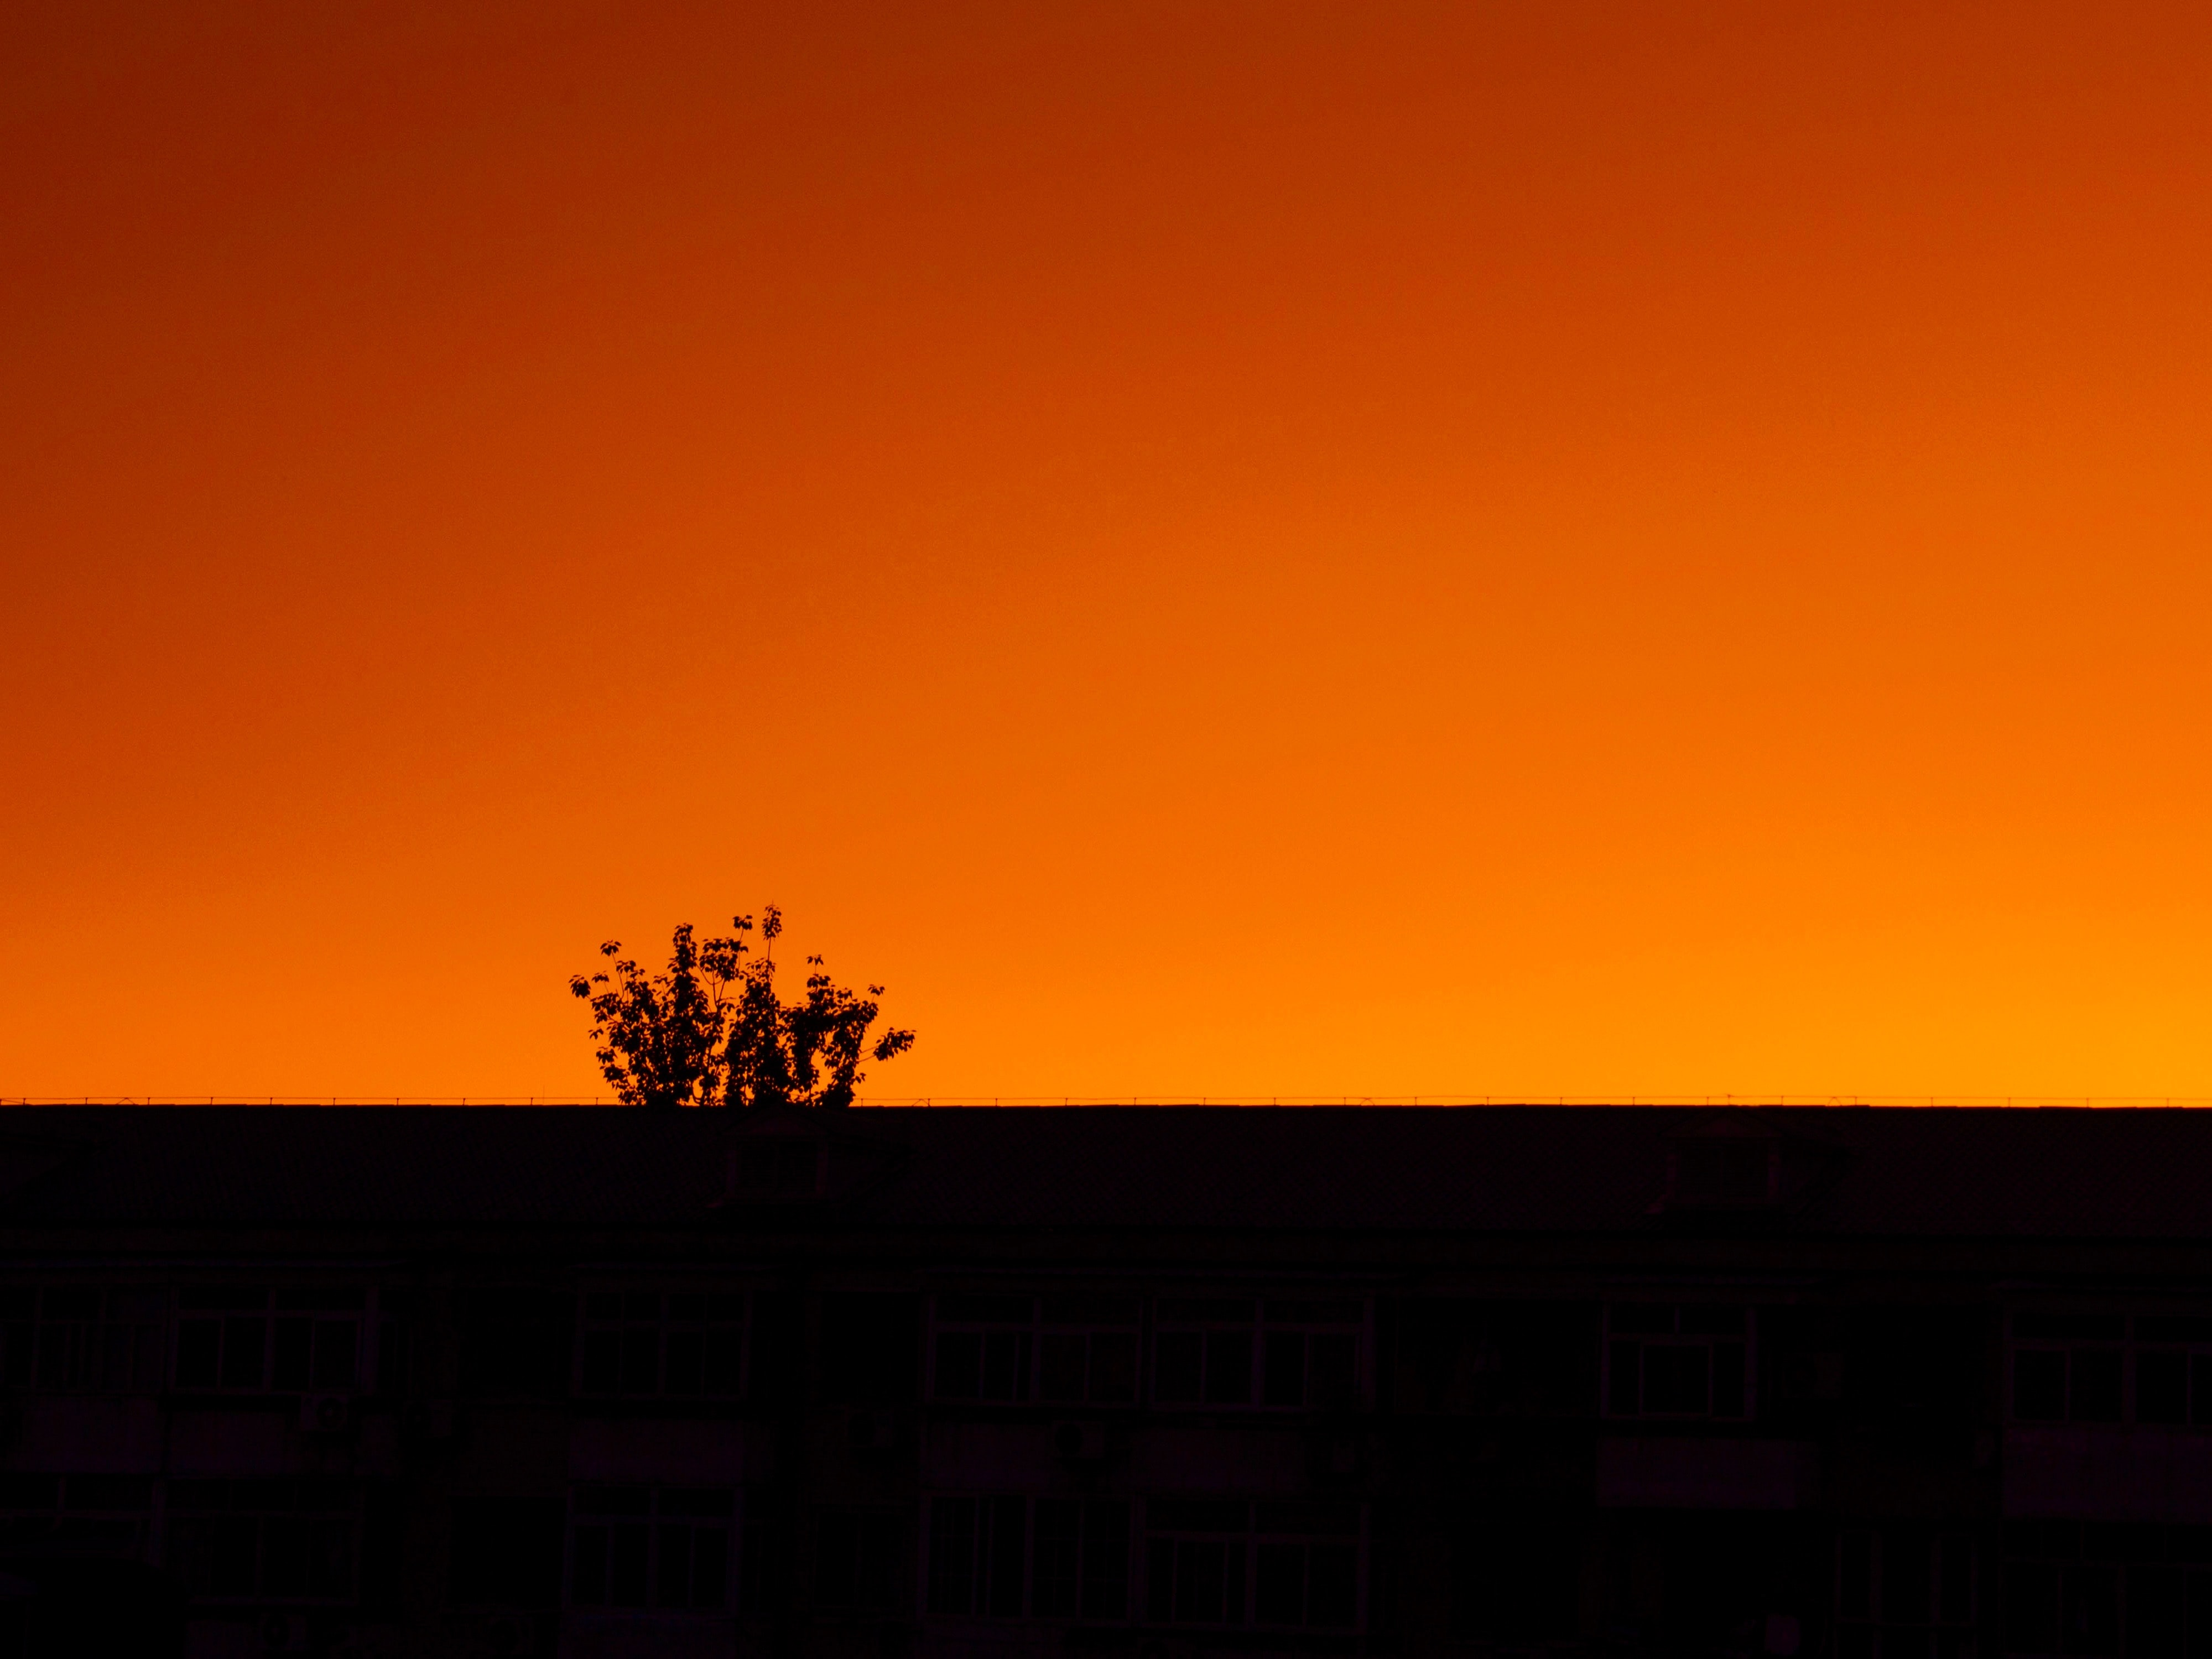 A silhouetted tree in front of a fiery orange sunset sky in Beijing